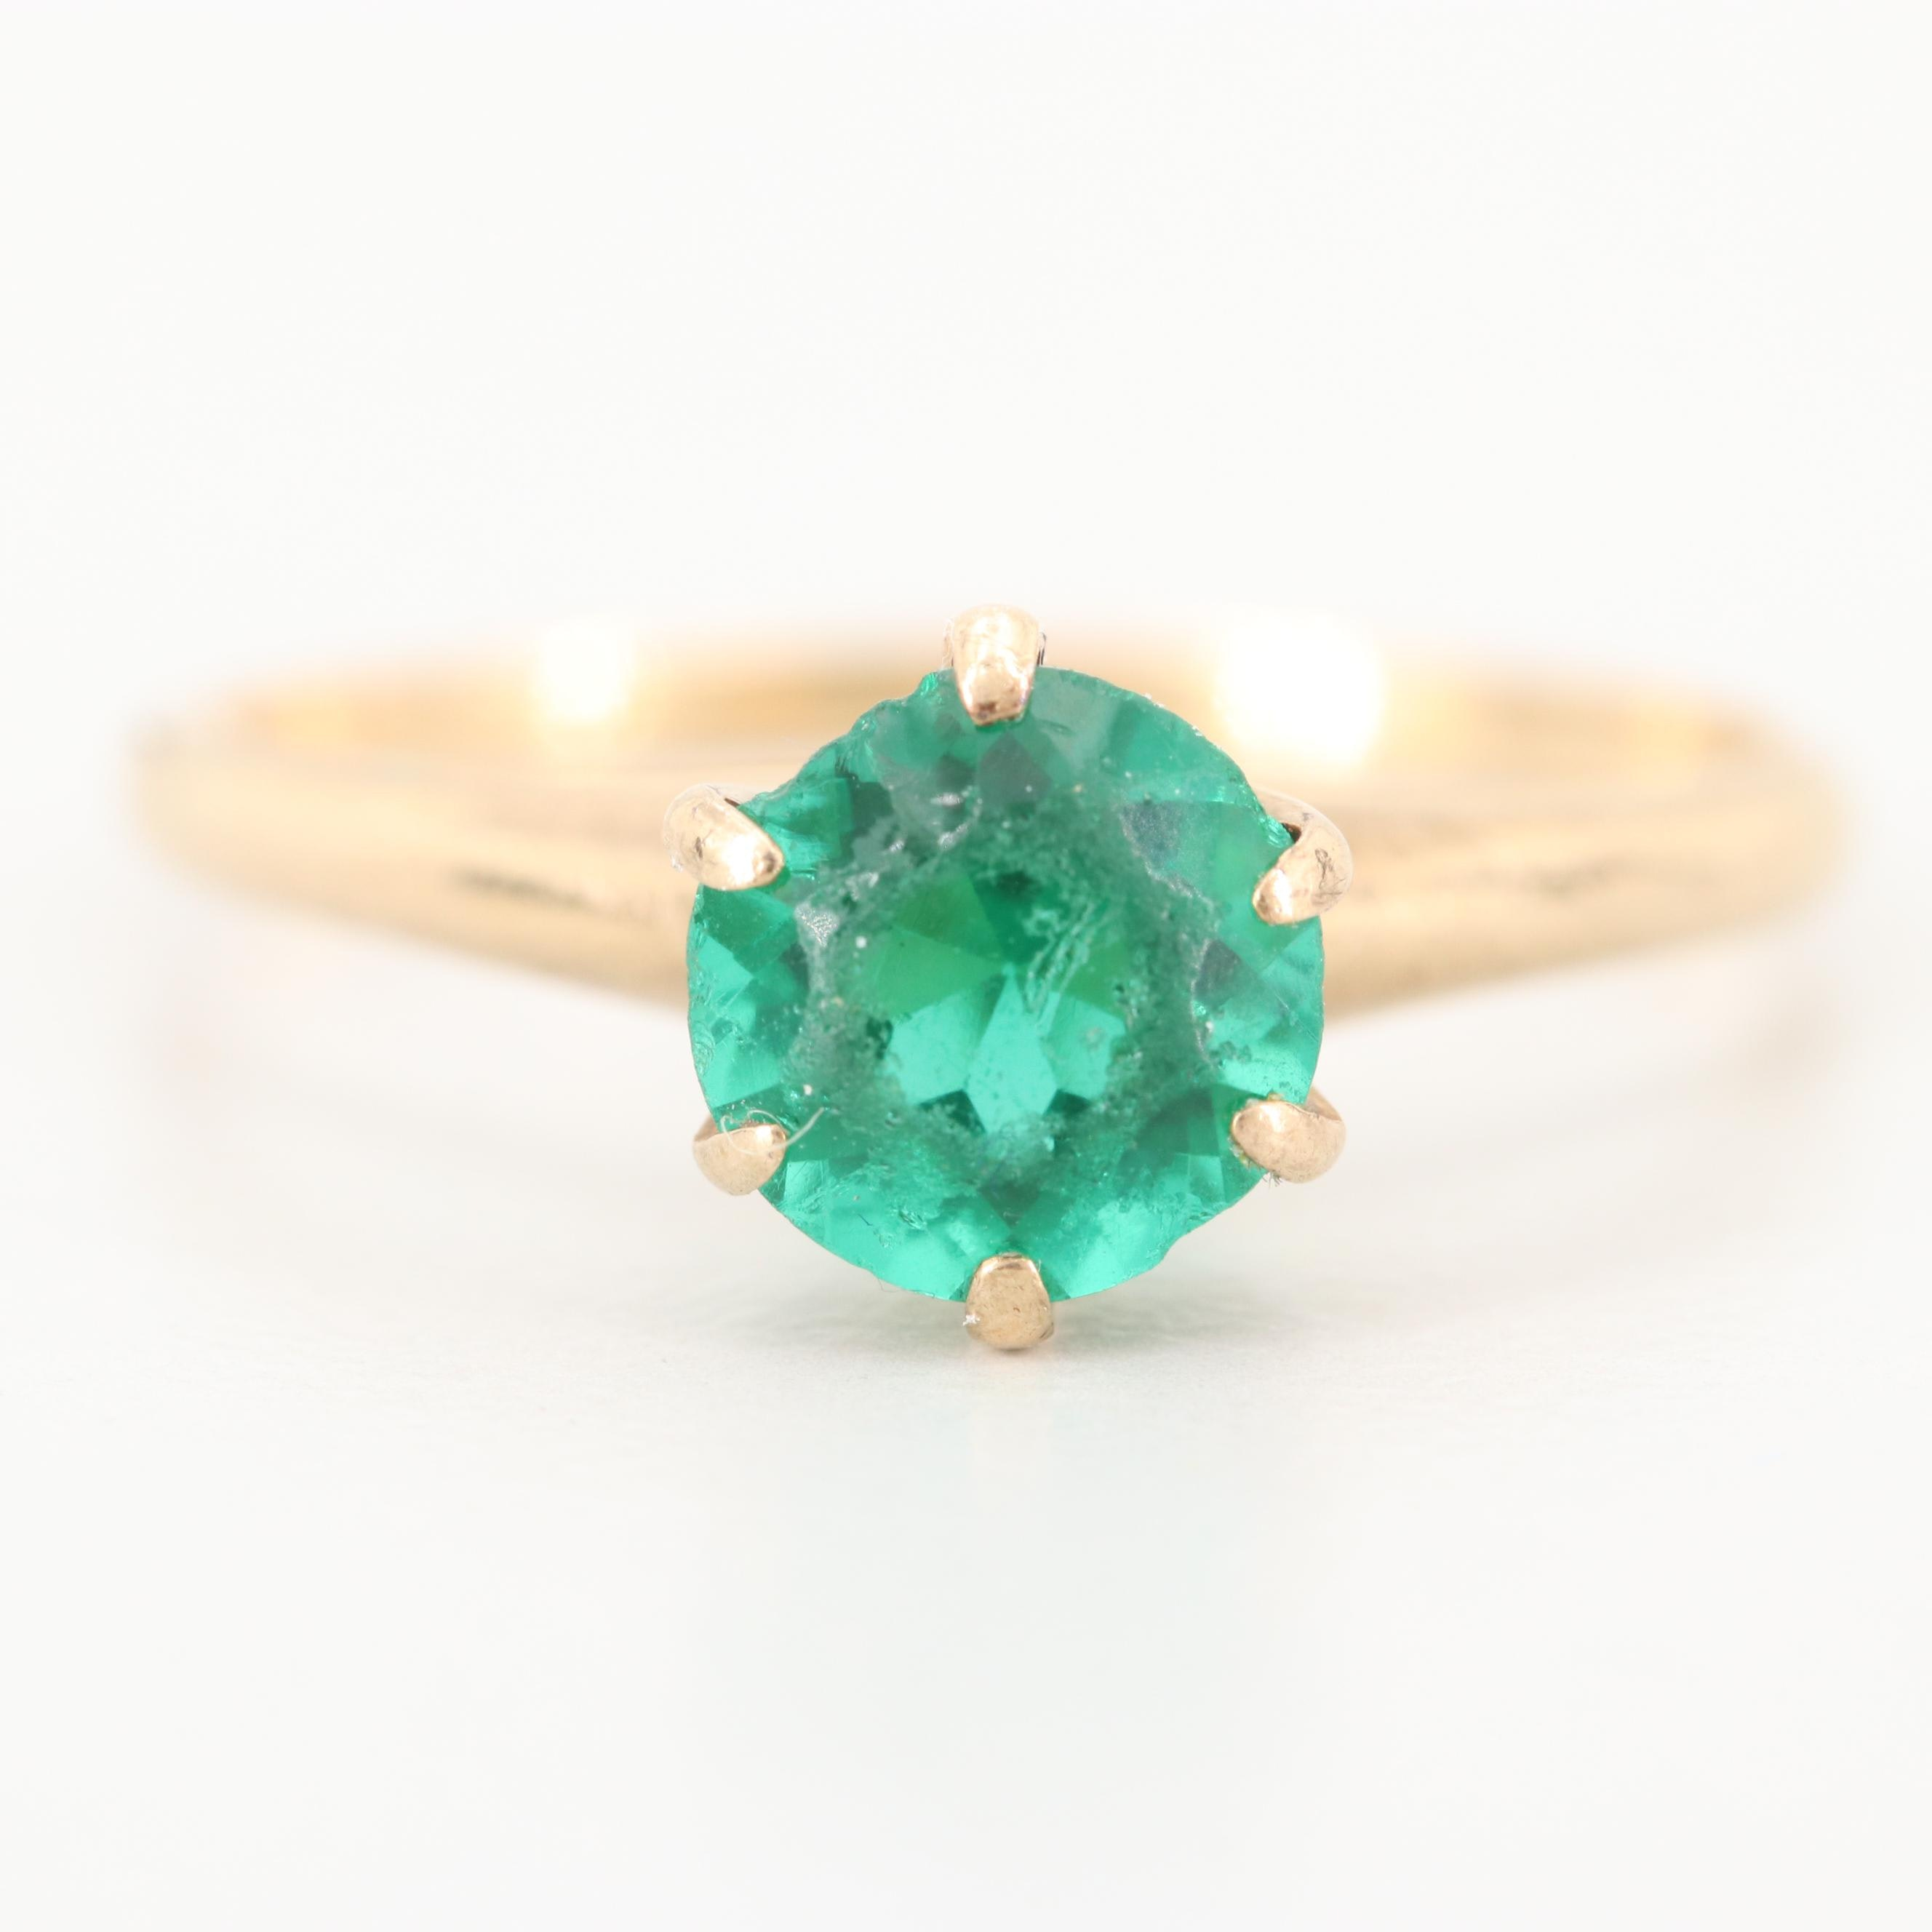 10K Yellow Gold Glass Solitaire Ring